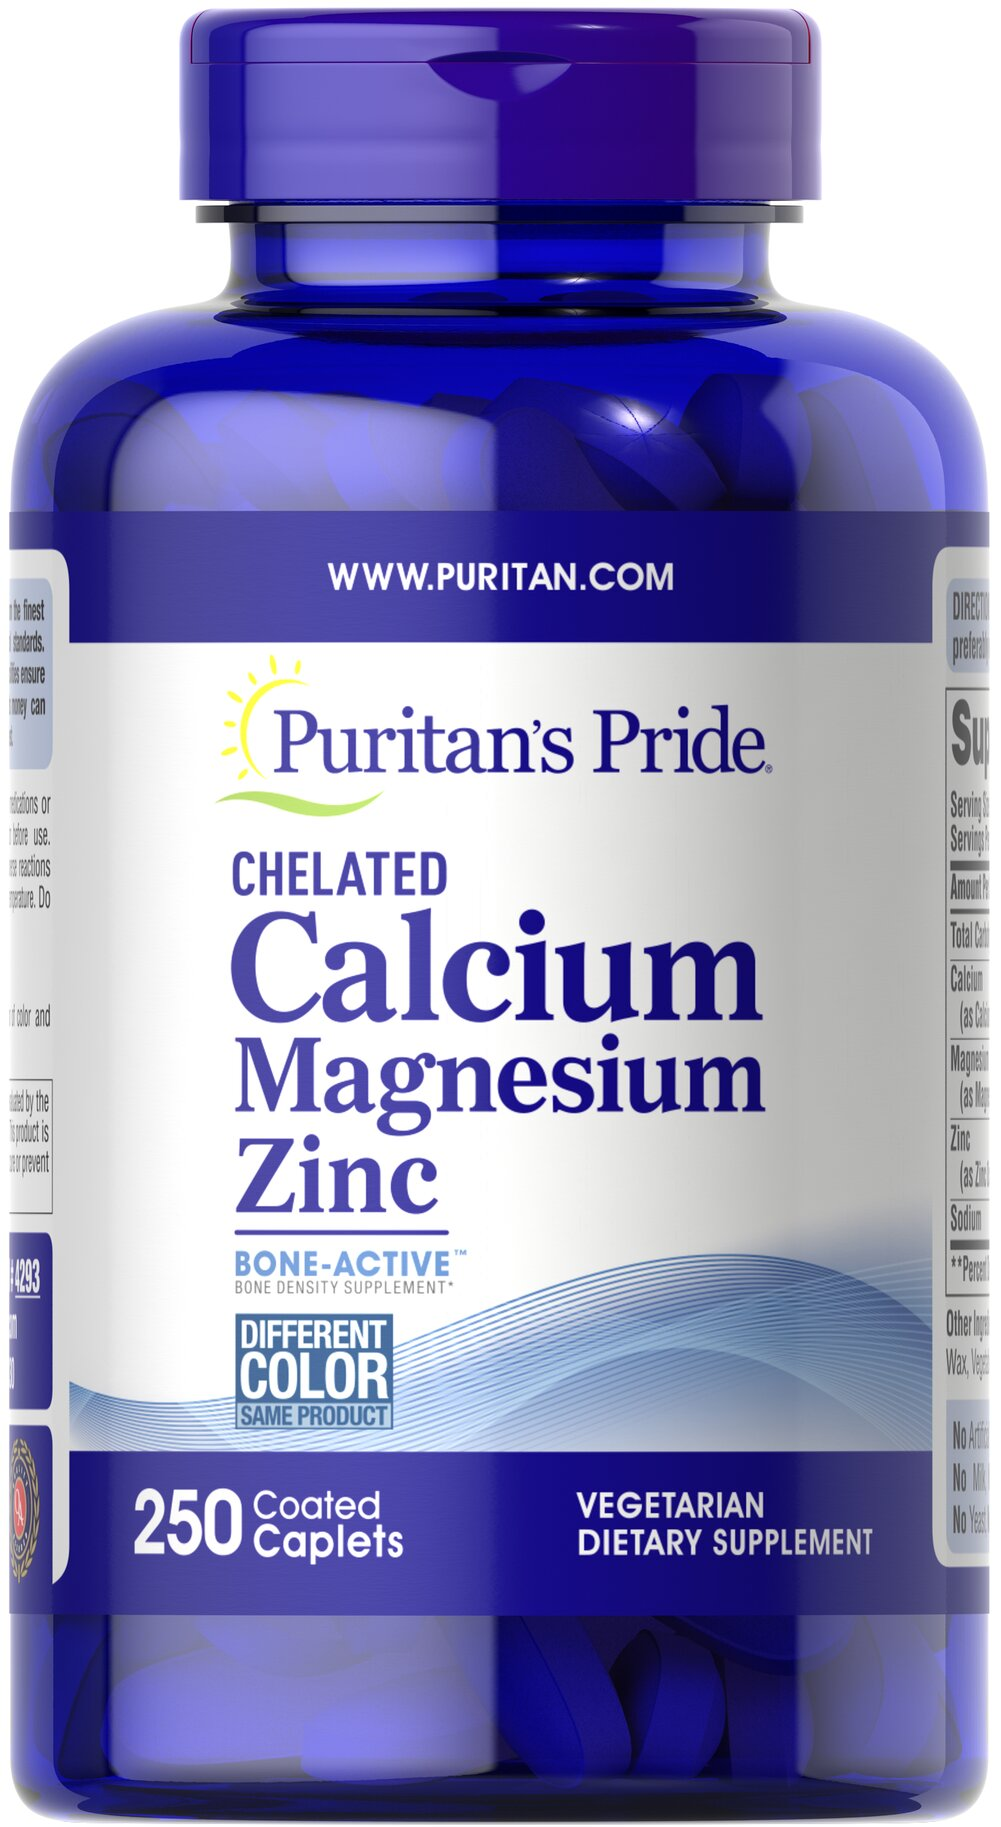 Chelated Calcium Magnesium Zinc <p></p><p>Puritan's Pride offers a high quality Calcium / Magnesium / Zinc supplement that delivers 1000 mg Calcium, 400 mg Magnesium and 25 mg Zinc in one convenient form for optimal nutritional support. Calcium is the primary mineral responsible for strong bones.** The body cannot produce calcium, so proper amounts must be ingested in order to provide the body with this essential nutrient. <br /></p><p>Calcium and magnesiu